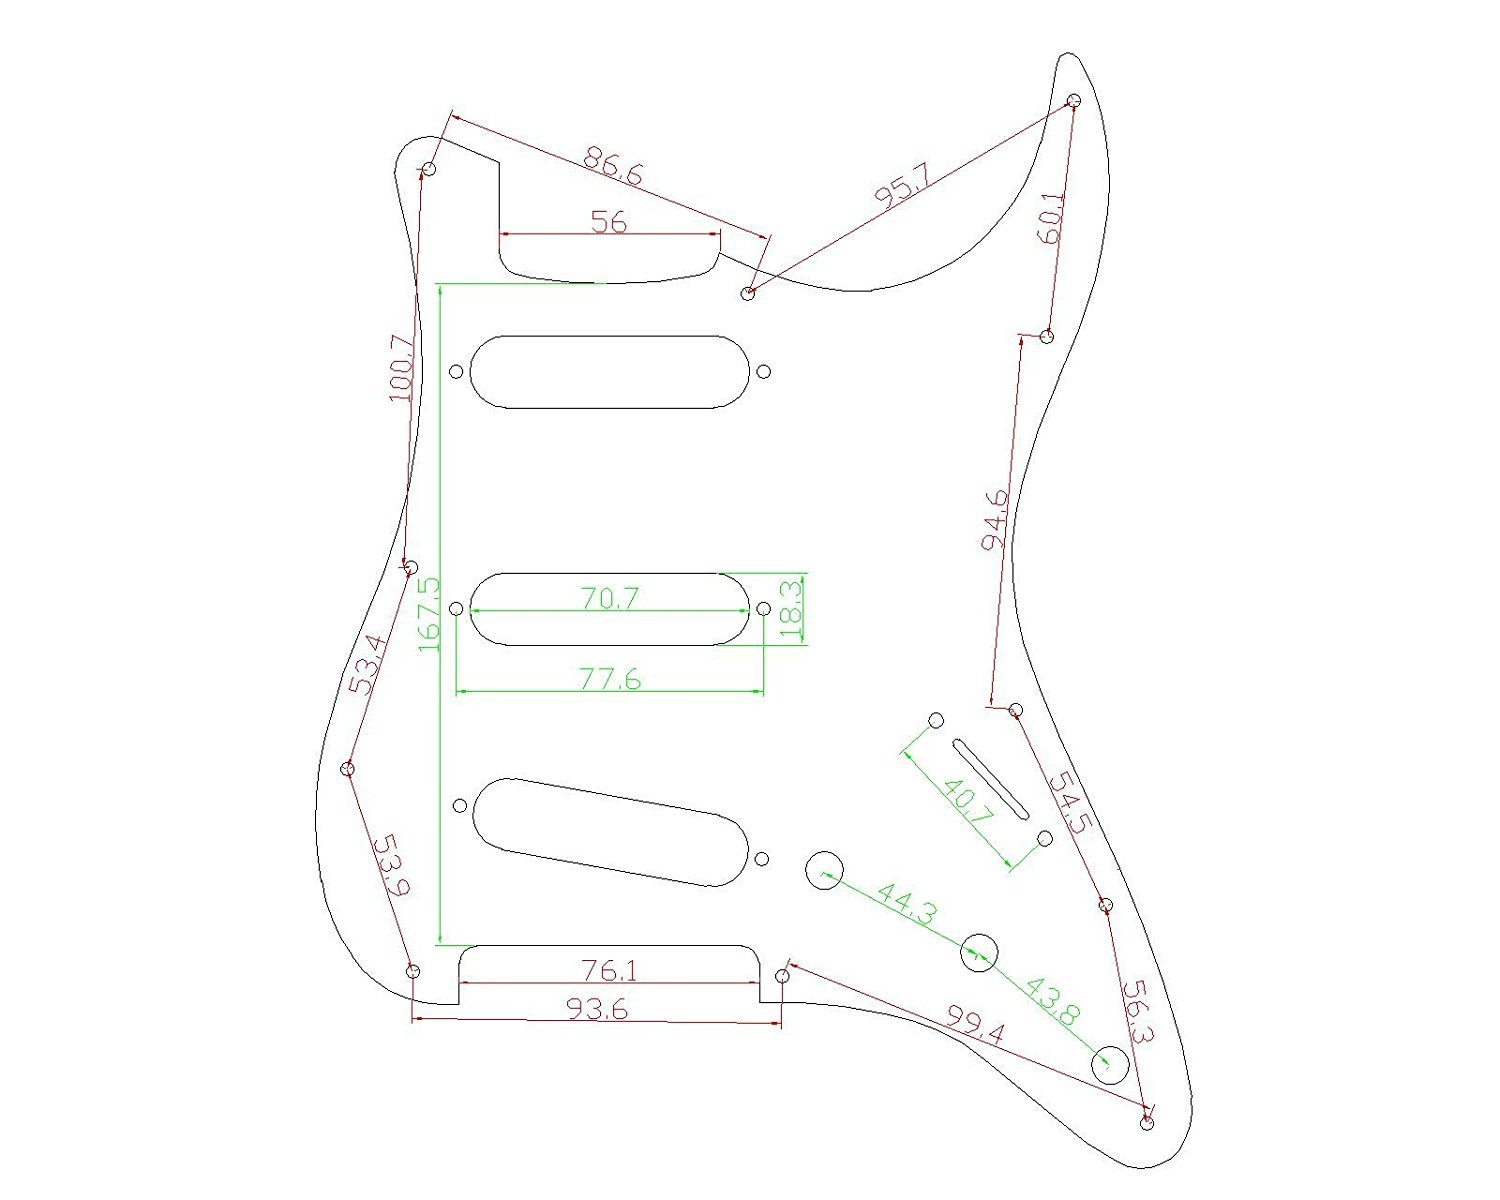 Stratocaster-Pickguard-For-Fender-US-Mexico-Strat-Electric-Guitar thumbnail 26